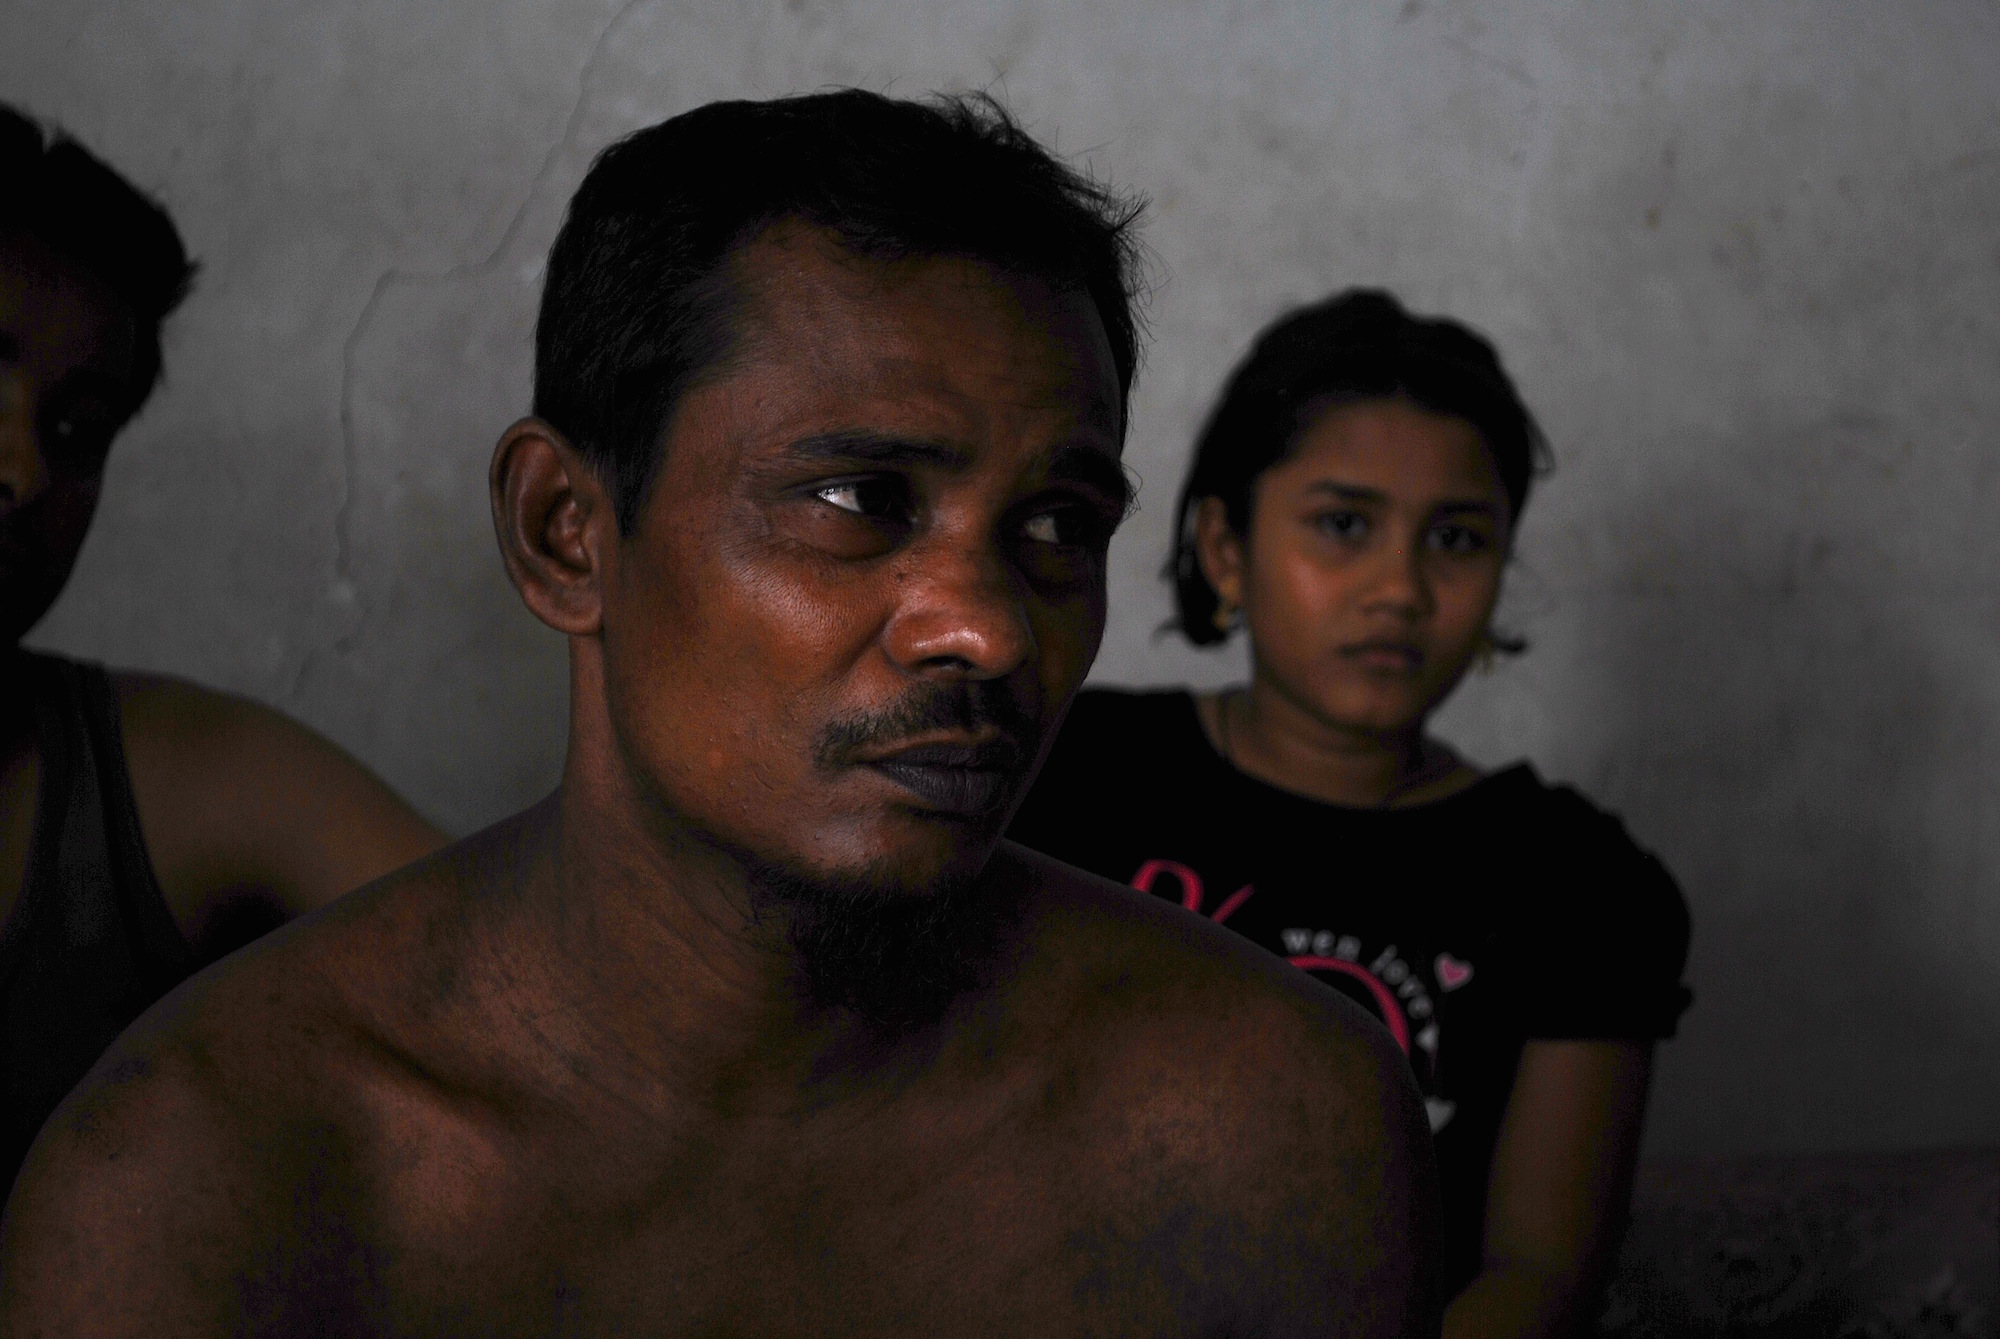 Abdul Hakim in the Rohingya community in the Malaysian capital Kuala Lumpur where he found shelter at the end of May 2015 after escaping a jungle camp run by human traffickers